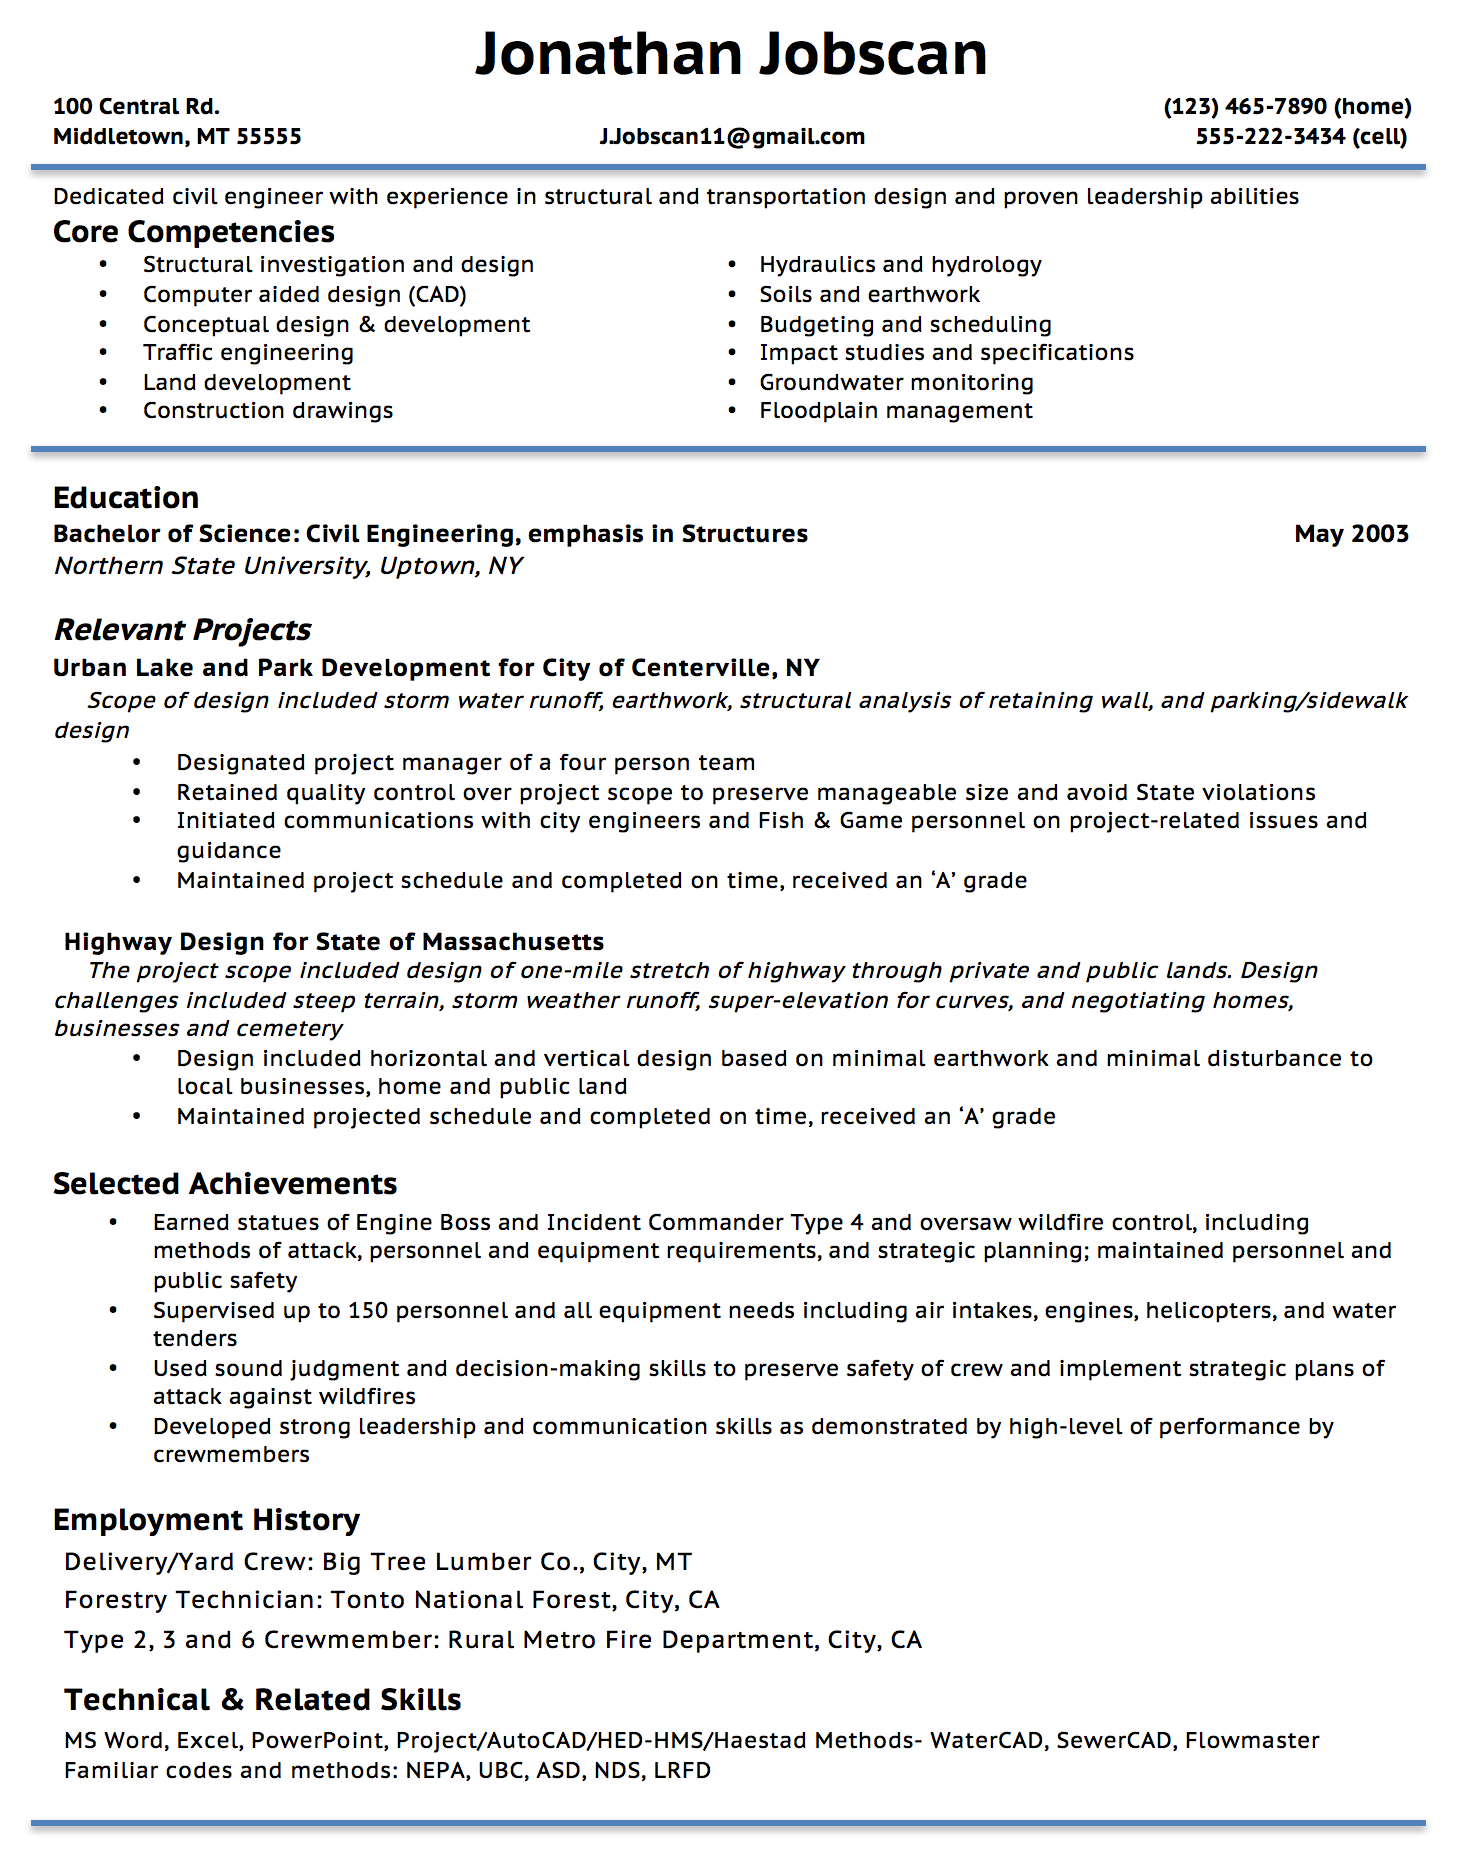 Opposenewapstandardsus  Pleasant Resume Writing Guide  Jobscan With Fair Example Of A Functional Resume Format With Delightful Resum Also Payroll Resume In Addition Research Resume And I Need A Resume As Well As Resume Now Review Additionally Cna Resumes From Jobscanco With Opposenewapstandardsus  Fair Resume Writing Guide  Jobscan With Delightful Example Of A Functional Resume Format And Pleasant Resum Also Payroll Resume In Addition Research Resume From Jobscanco